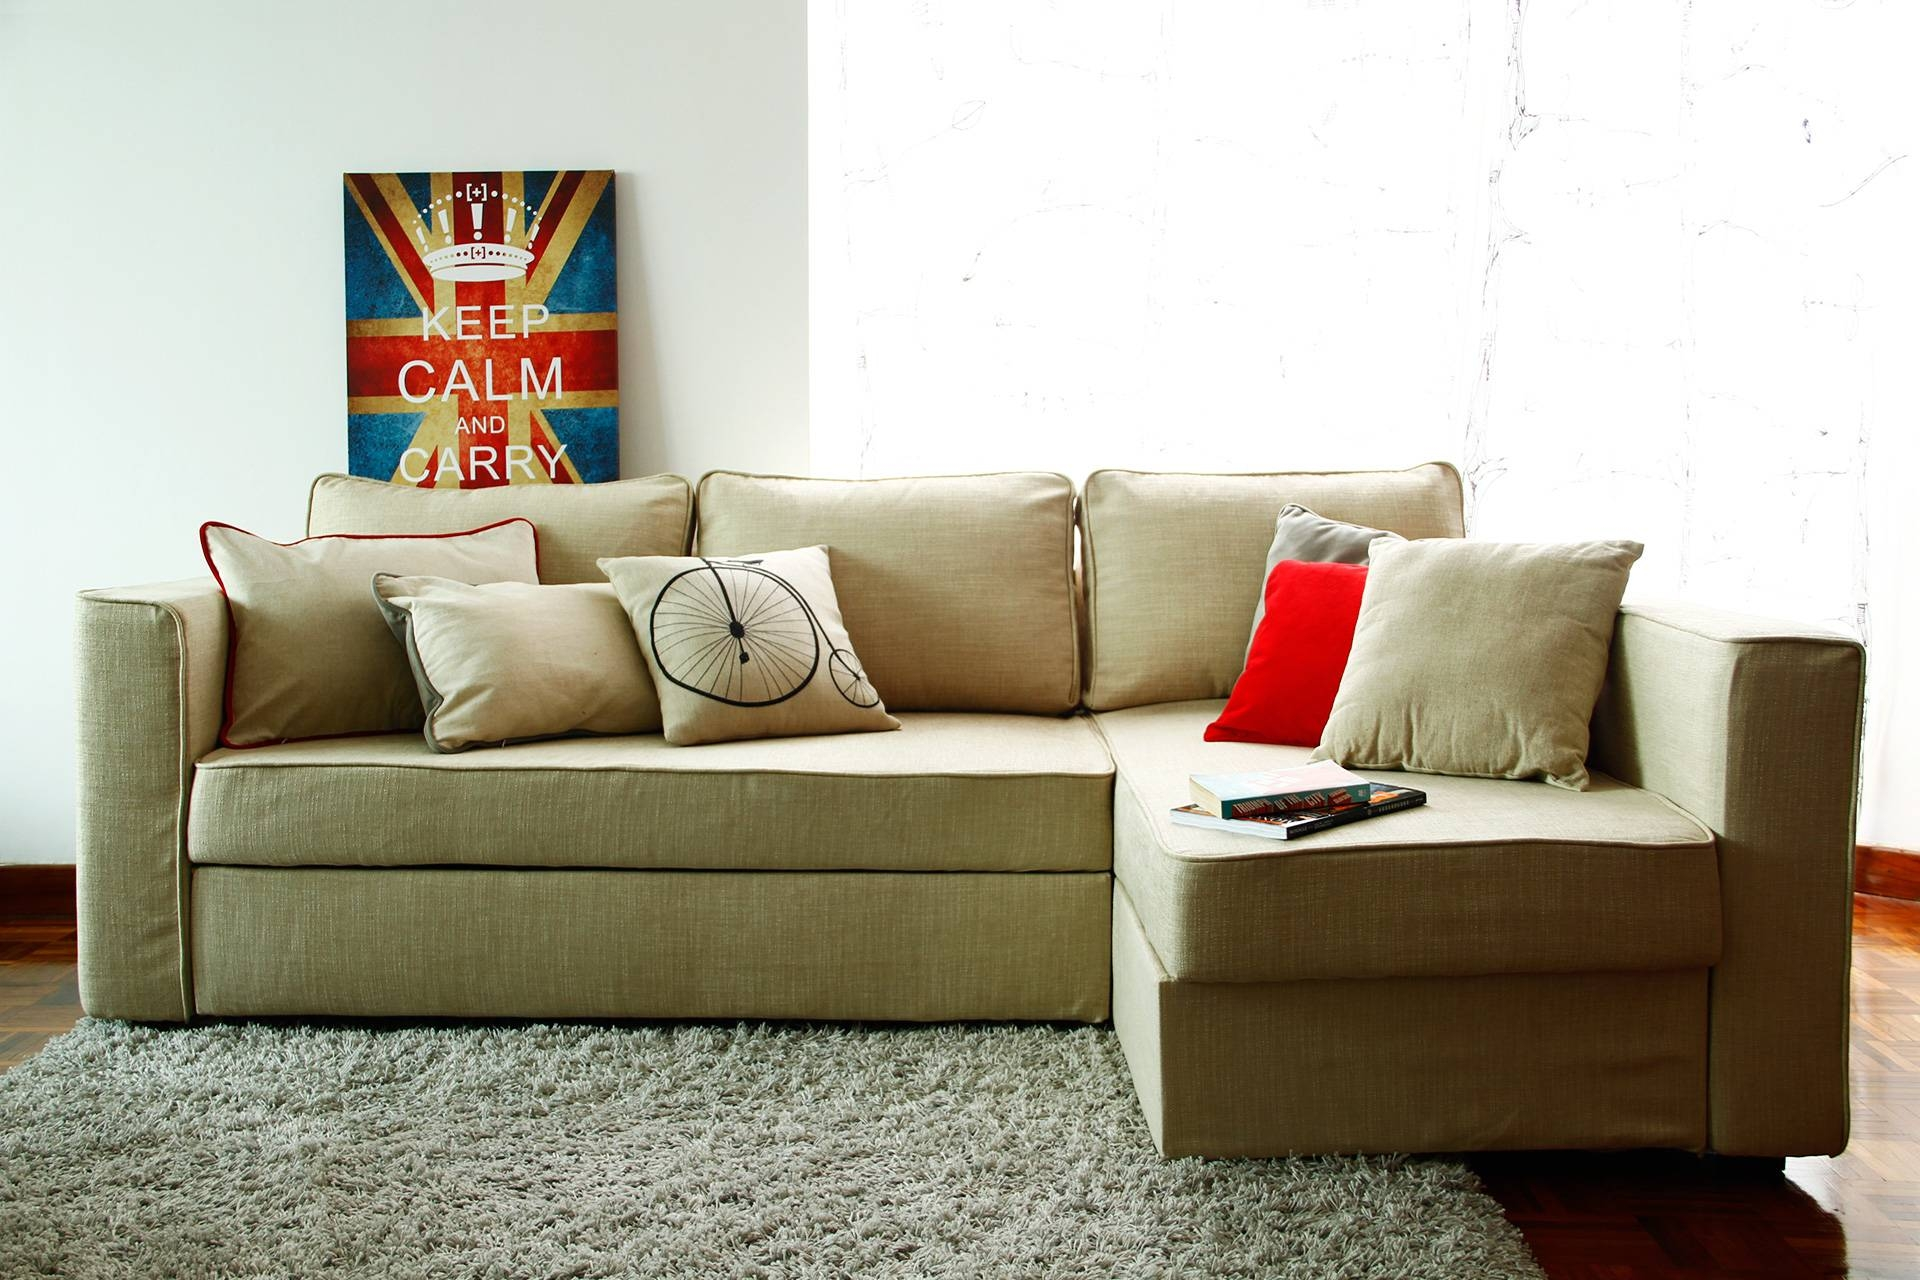 Can Your Sofa Be Slipcovered And Brought Back To Life? inside Camelback Sofa Slipcovers (Image 4 of 15)